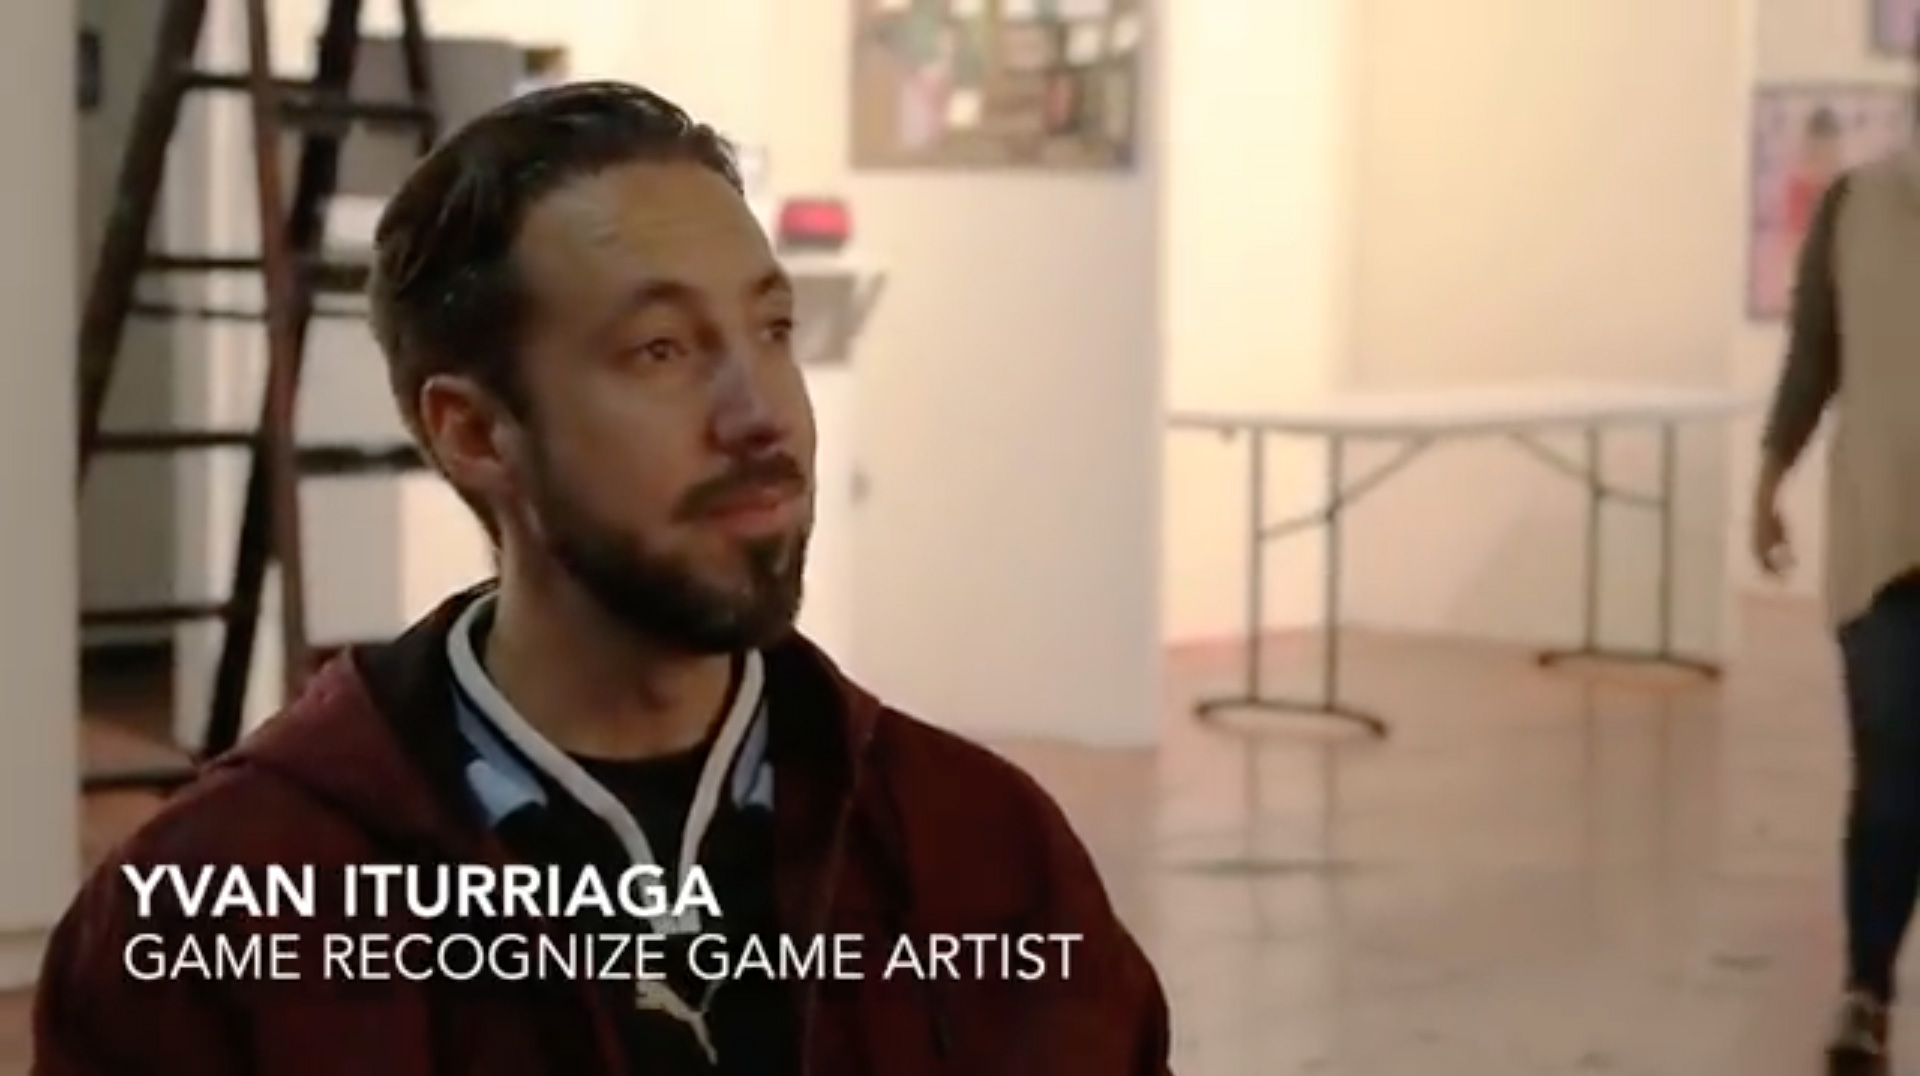 Game Recognize Game Artist Interview: Yvan Iturriaga